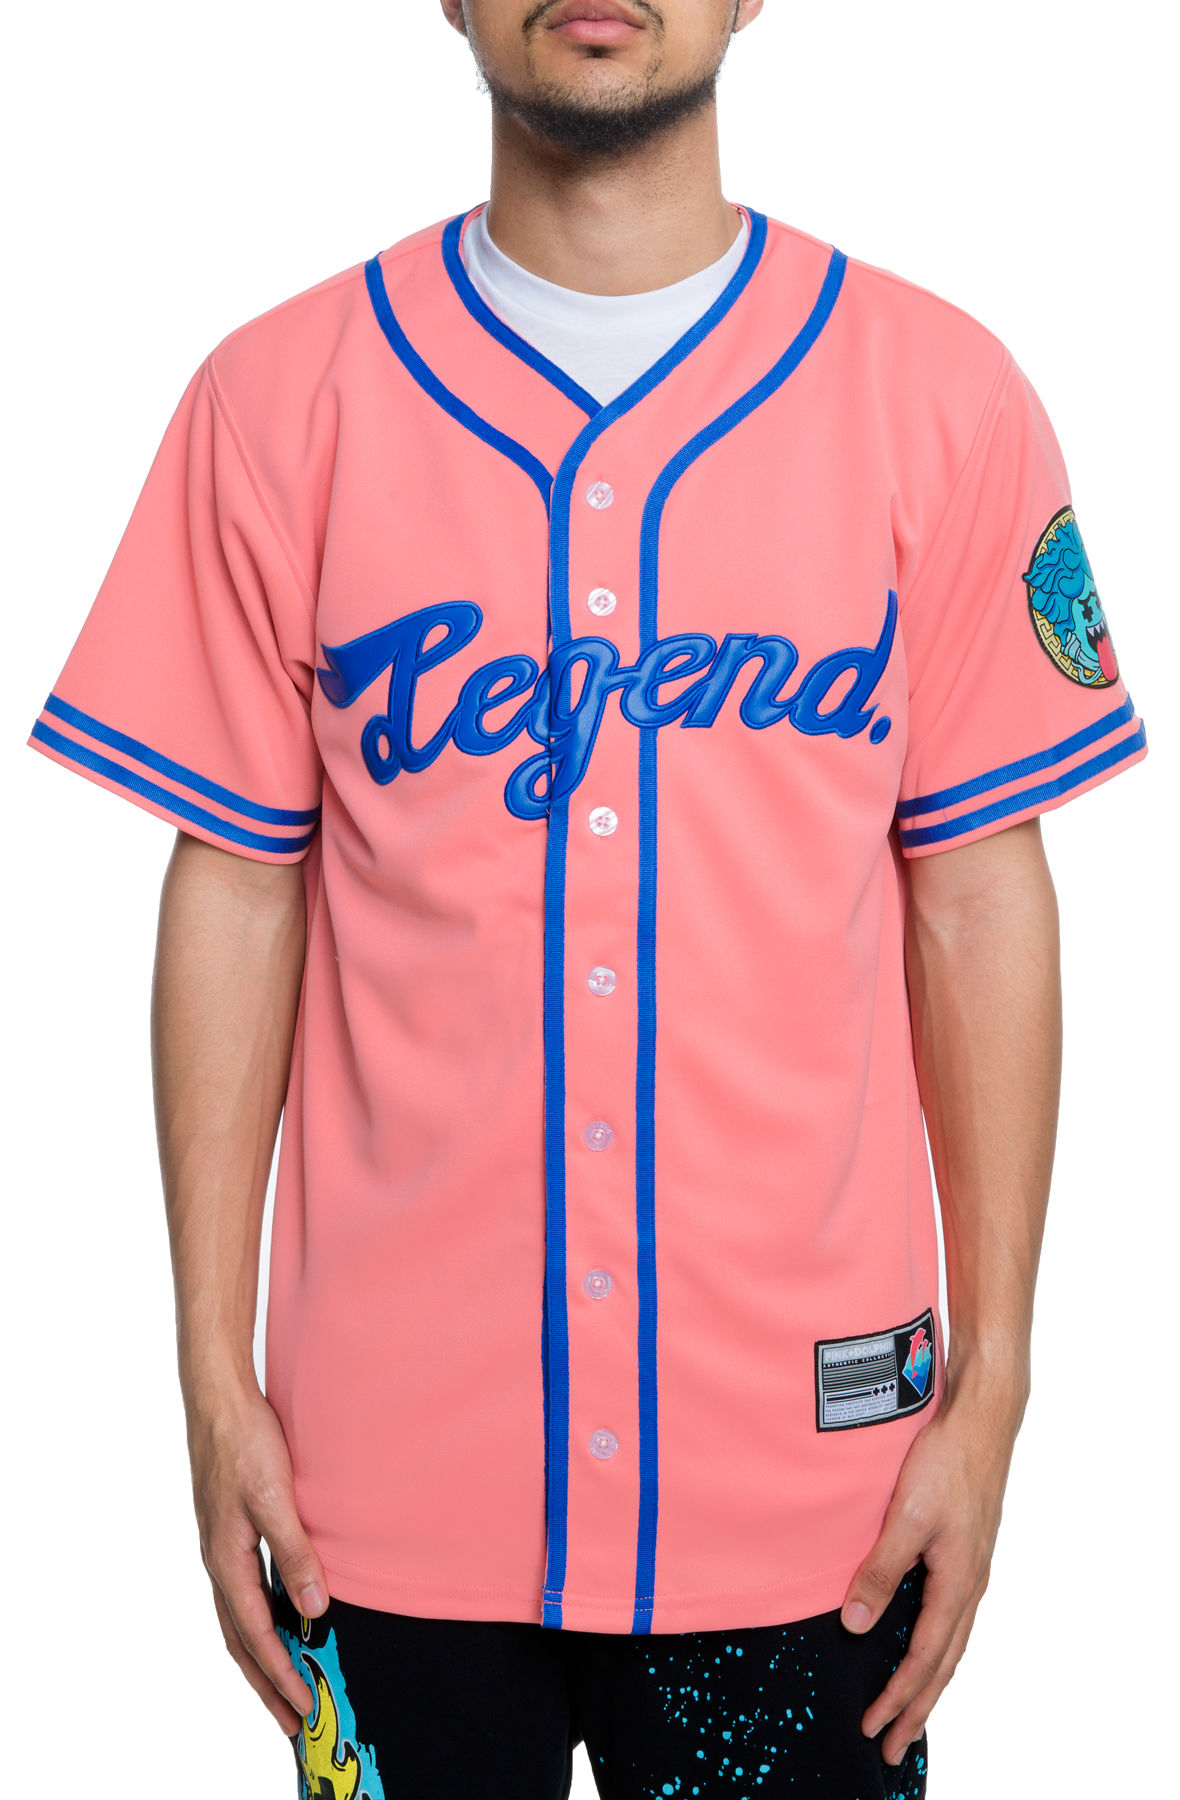 Image of The Legends Jersey in Pink